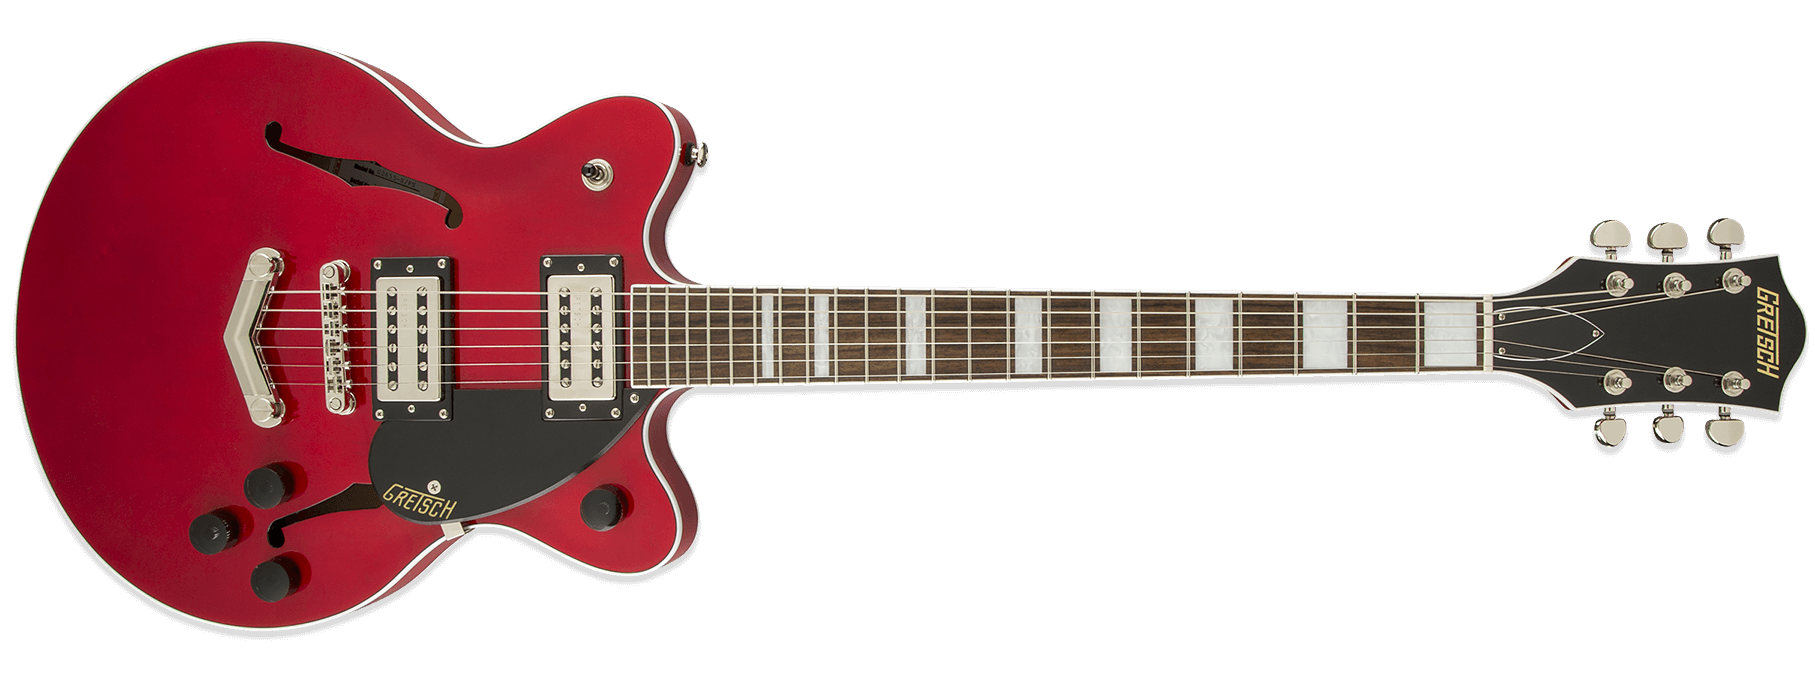 Gretsch G2655 Streamliner Center-Block Jr V-Stoptail Flagstaff Sunset